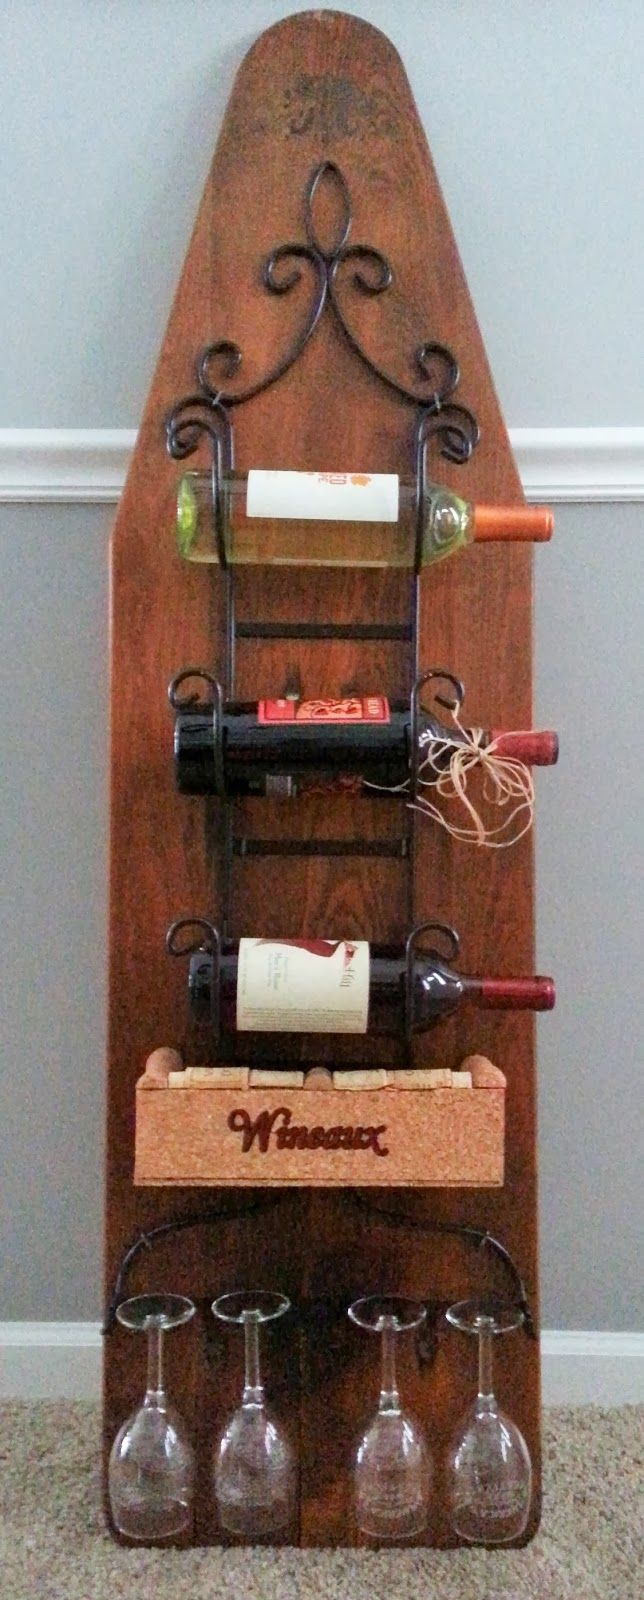 old wooden ironing board repurposed into wine rack; add metal racks; Upcycle, Recycle, Salvage, diy, thrift, flea, repurpose, refashion!  For vintage ideas and goods shop at Estate ReSale & ReDesign, Bonita Springs, FL